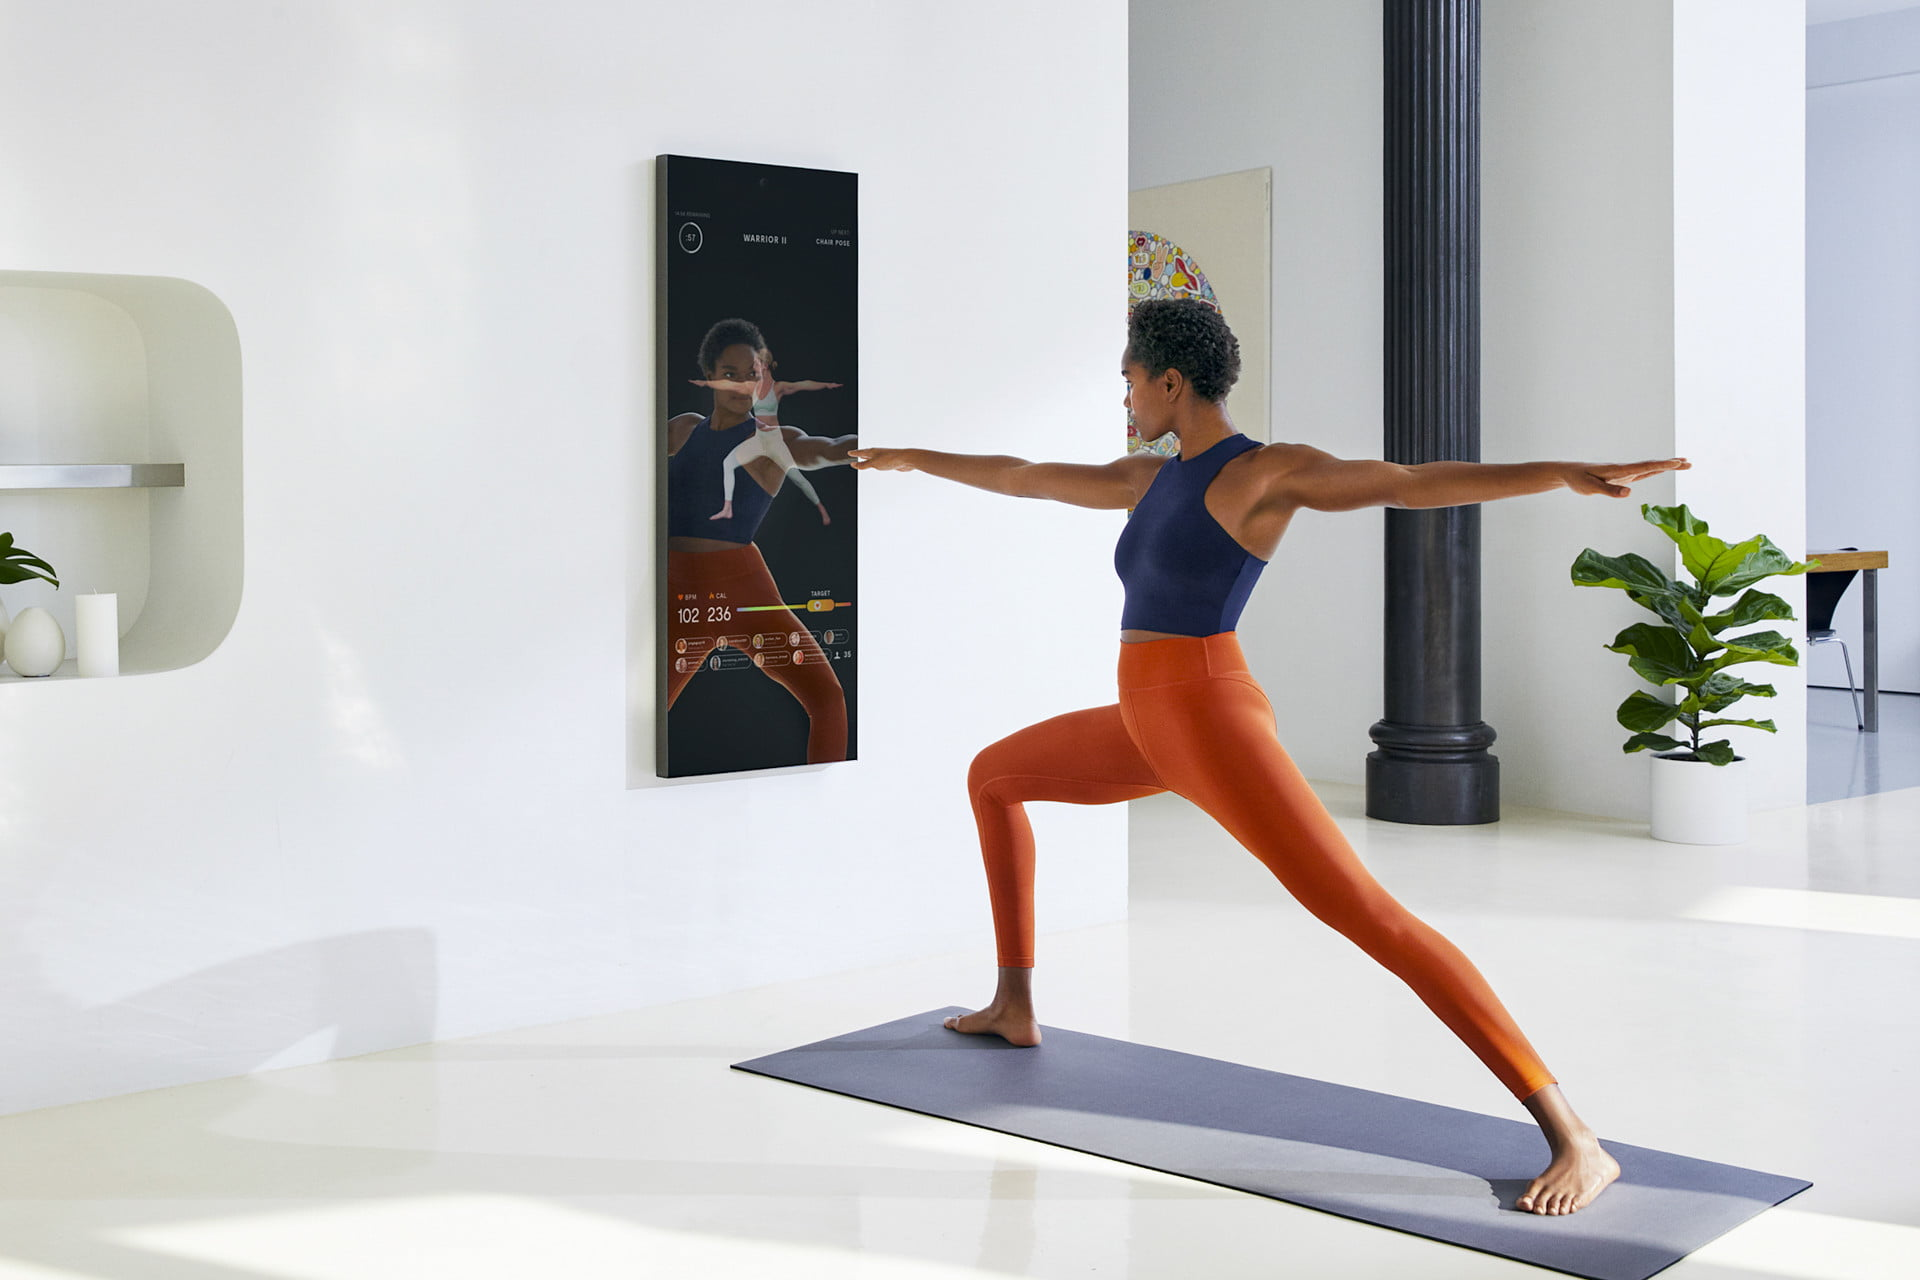 Forget the gym. Mirror brings one-on-one personal training to your living room